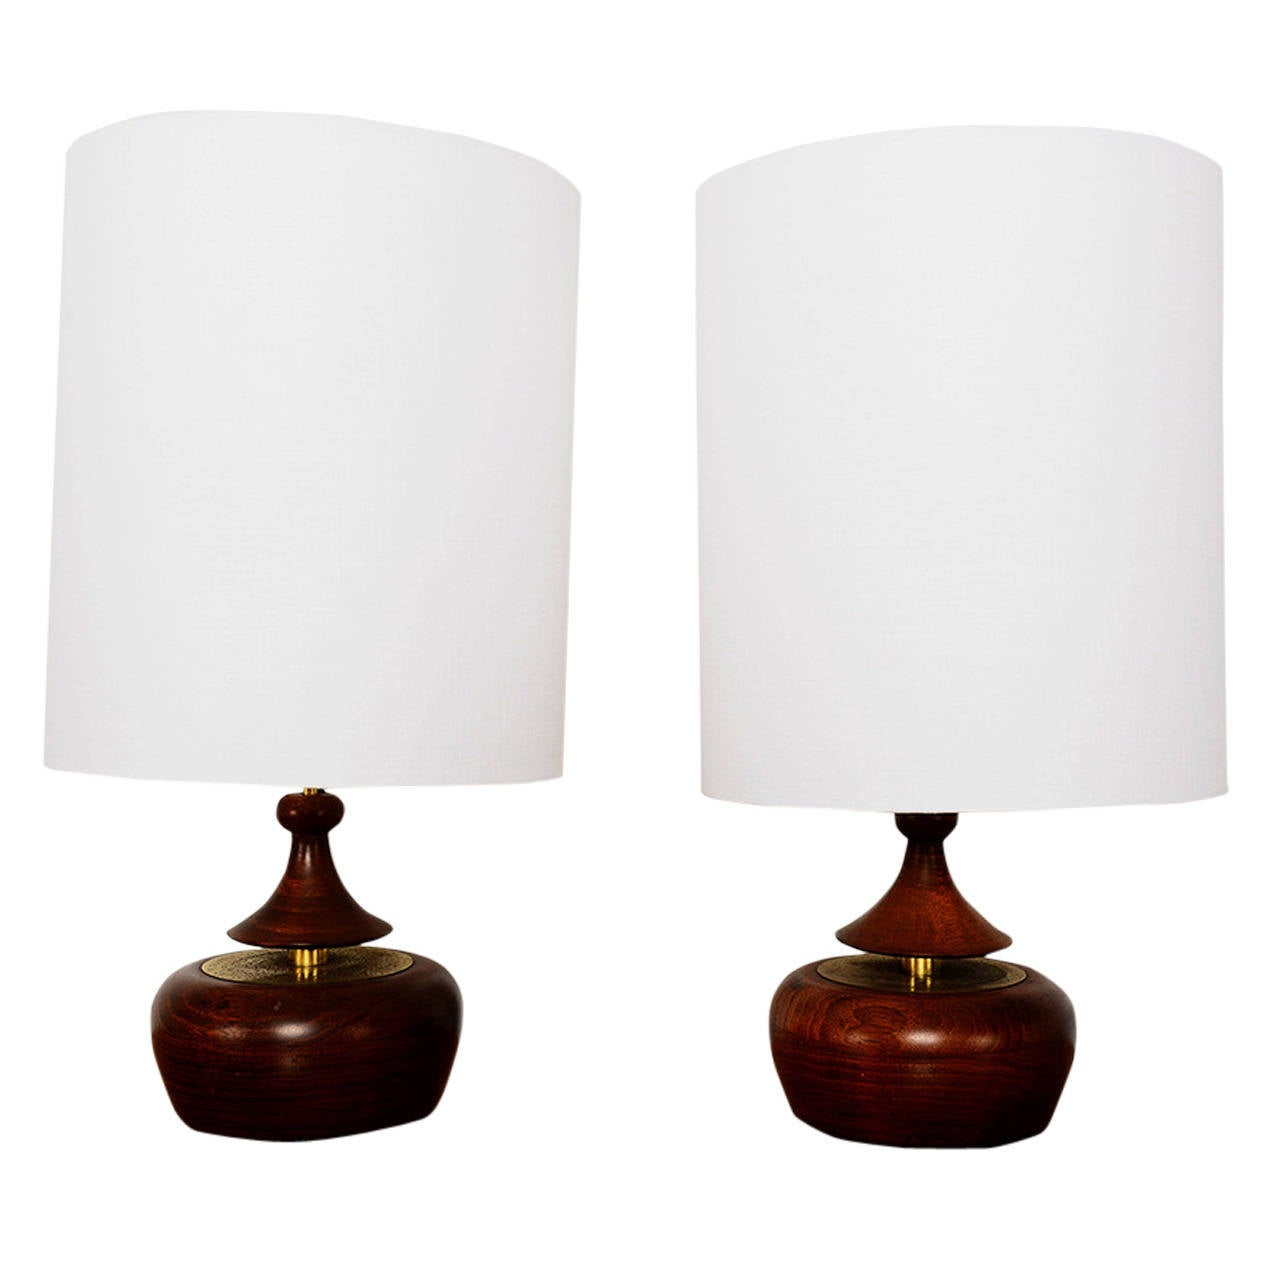 mid century modern walnut pair of table lamps for sale at 1stdibs. Black Bedroom Furniture Sets. Home Design Ideas